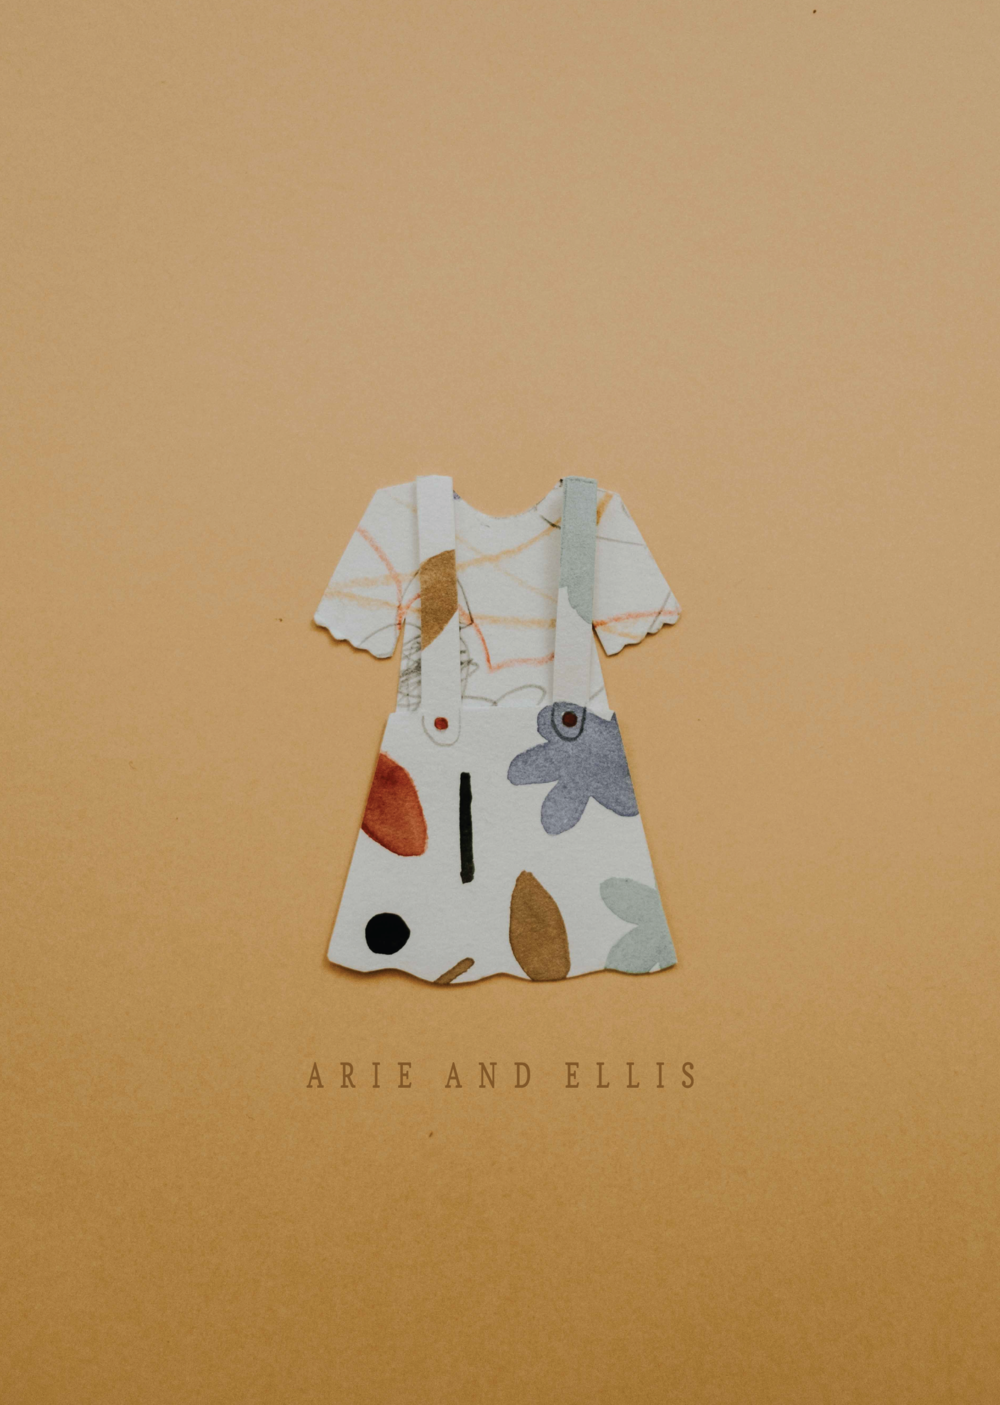 Arie and Ellis | Branding